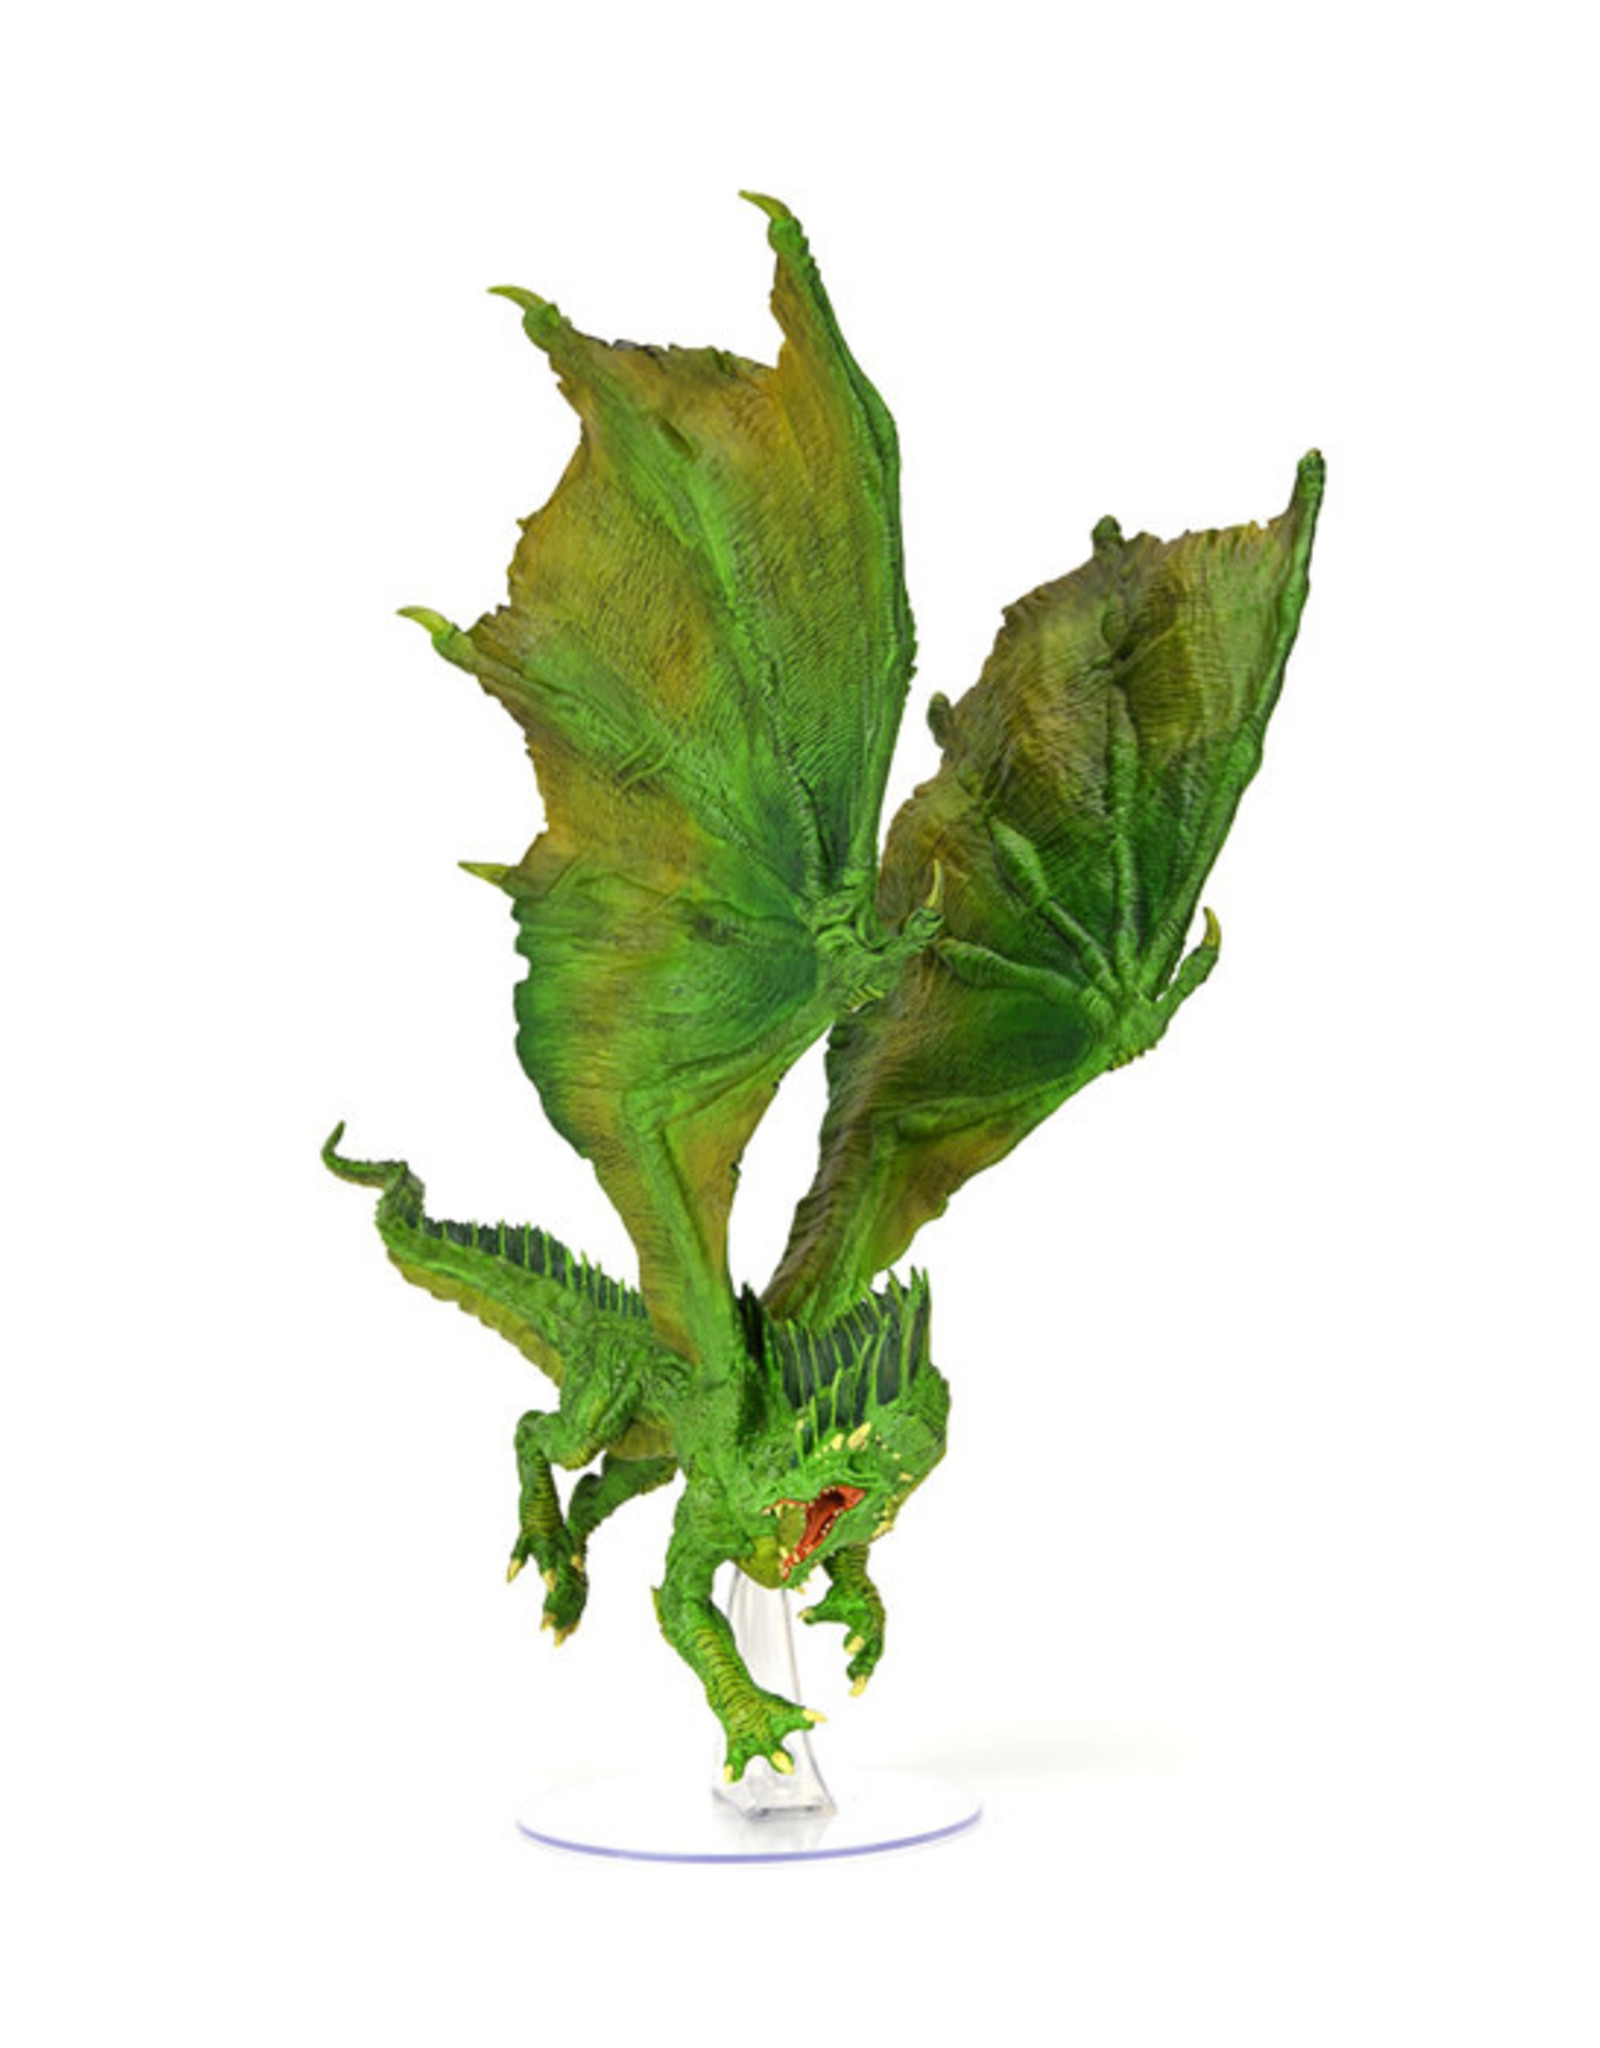 Dungeons & Dragons Dungeons & Dragons: Icons of the Realms - Adult Green Dragon